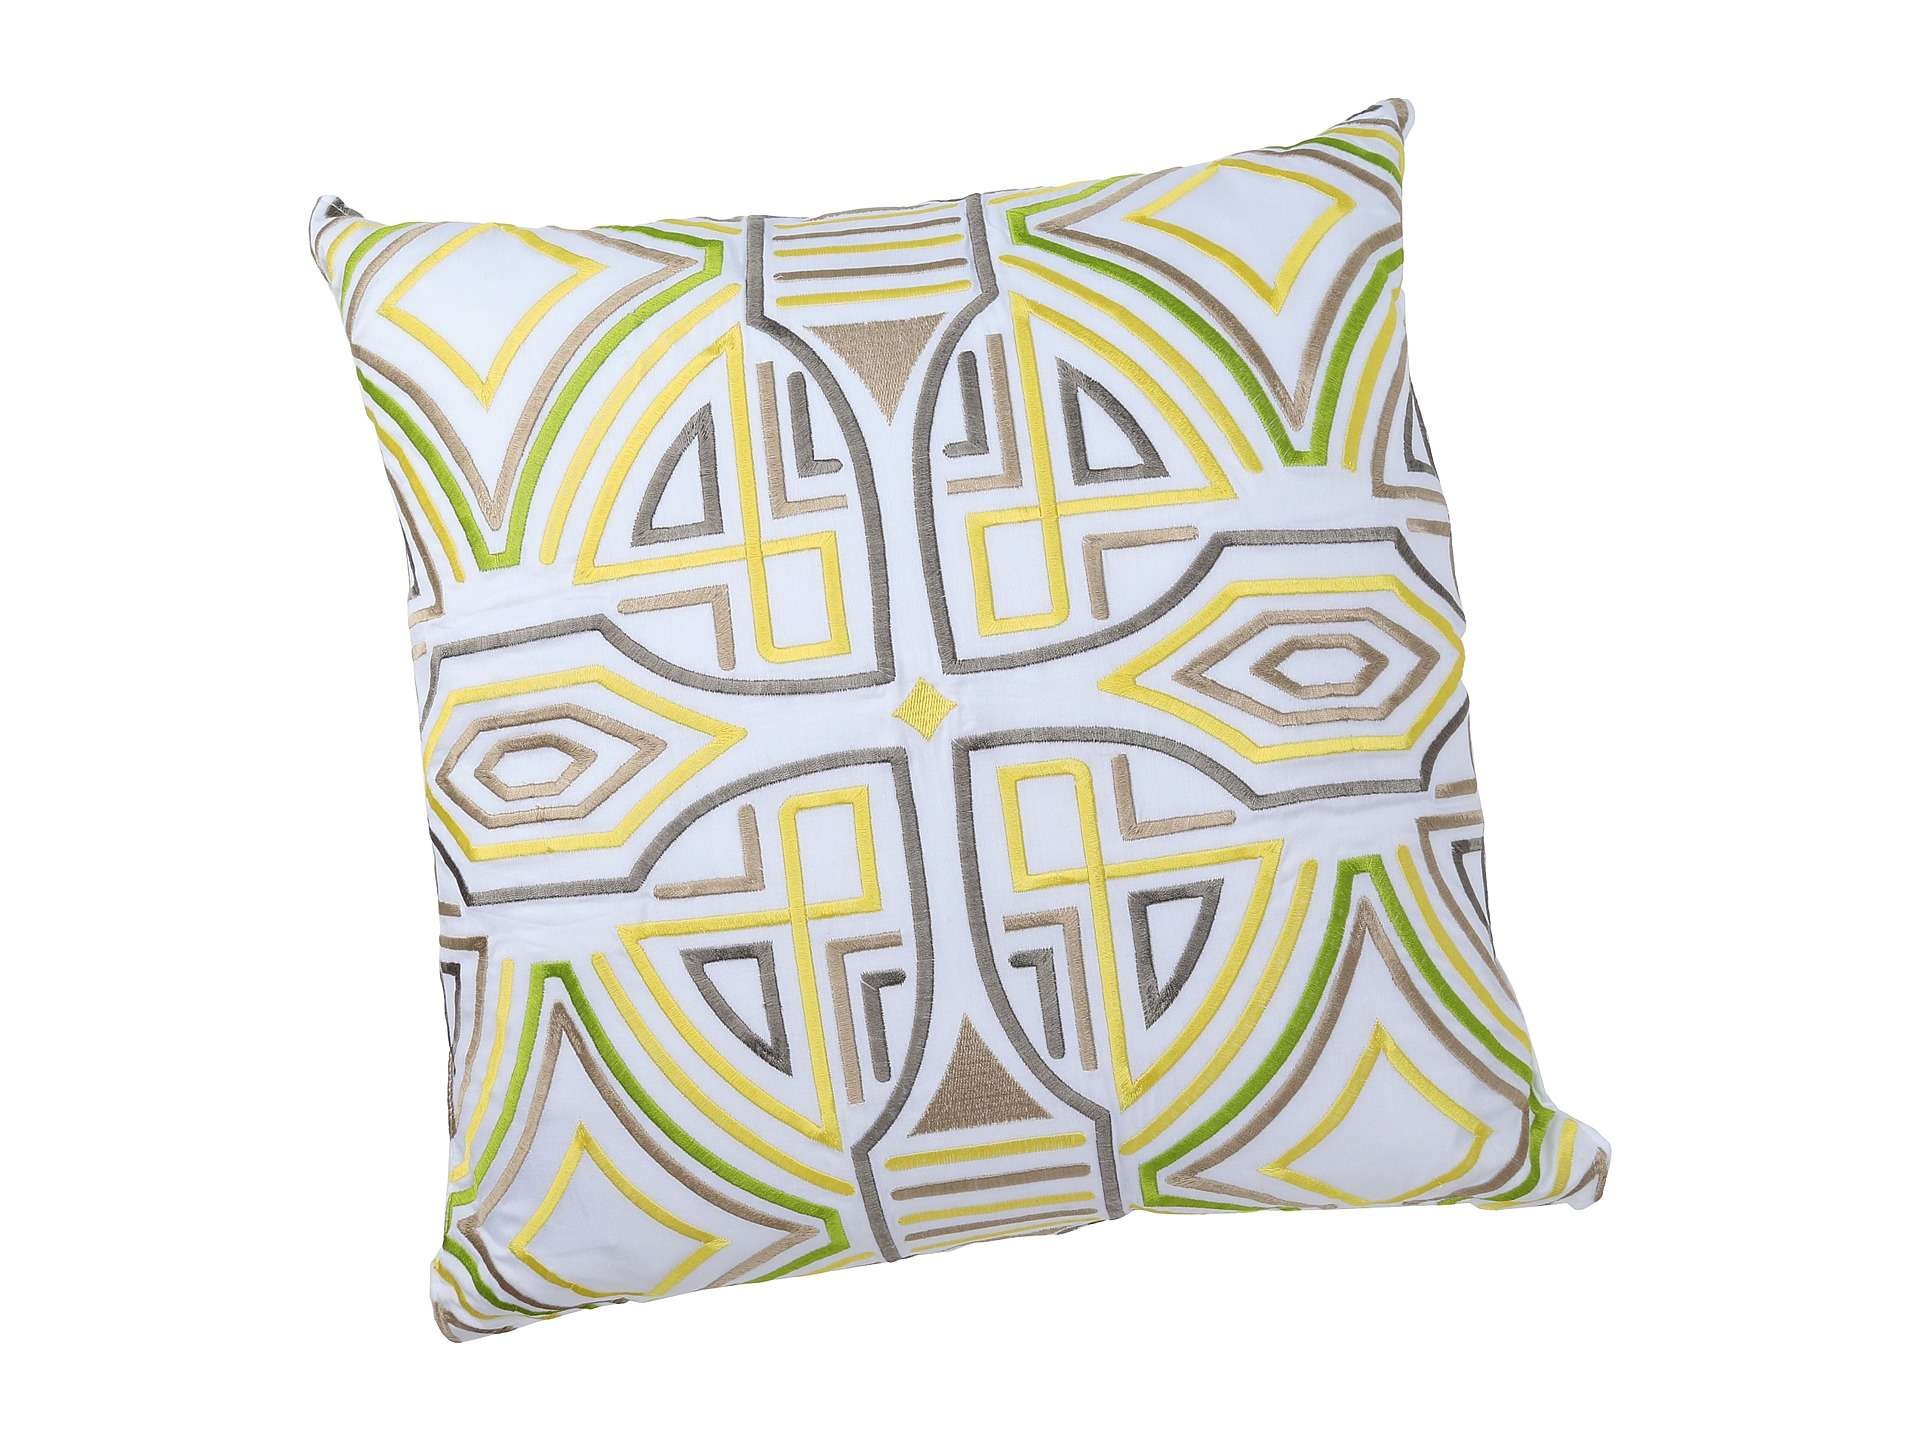 Trina Turk Ikat Retro Pillow Multi Clothing Shipped Zappos